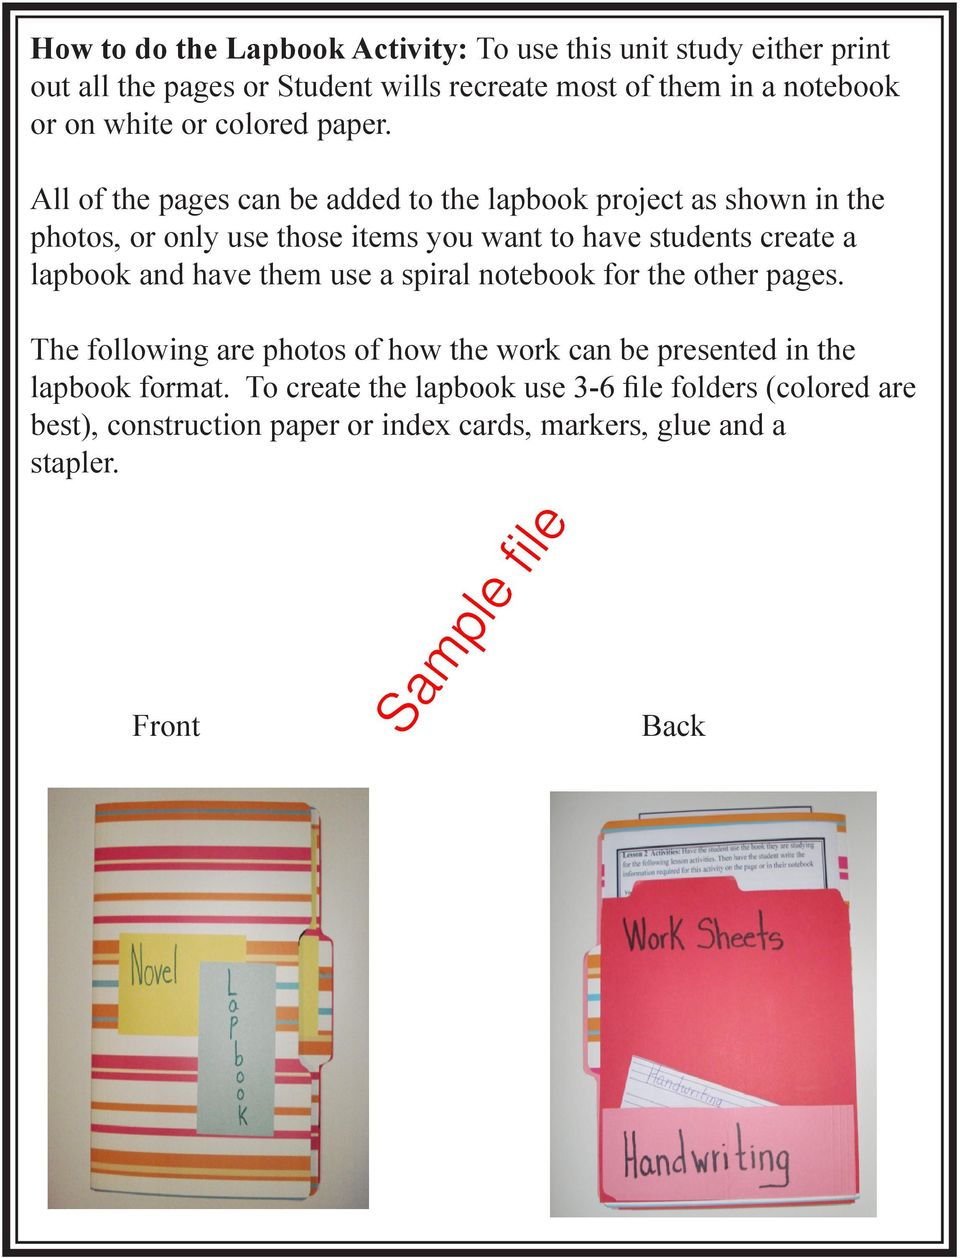 All of the pages can be added to the lapbook project as shown in the photos, or only use those items you want to have students create a lapbook